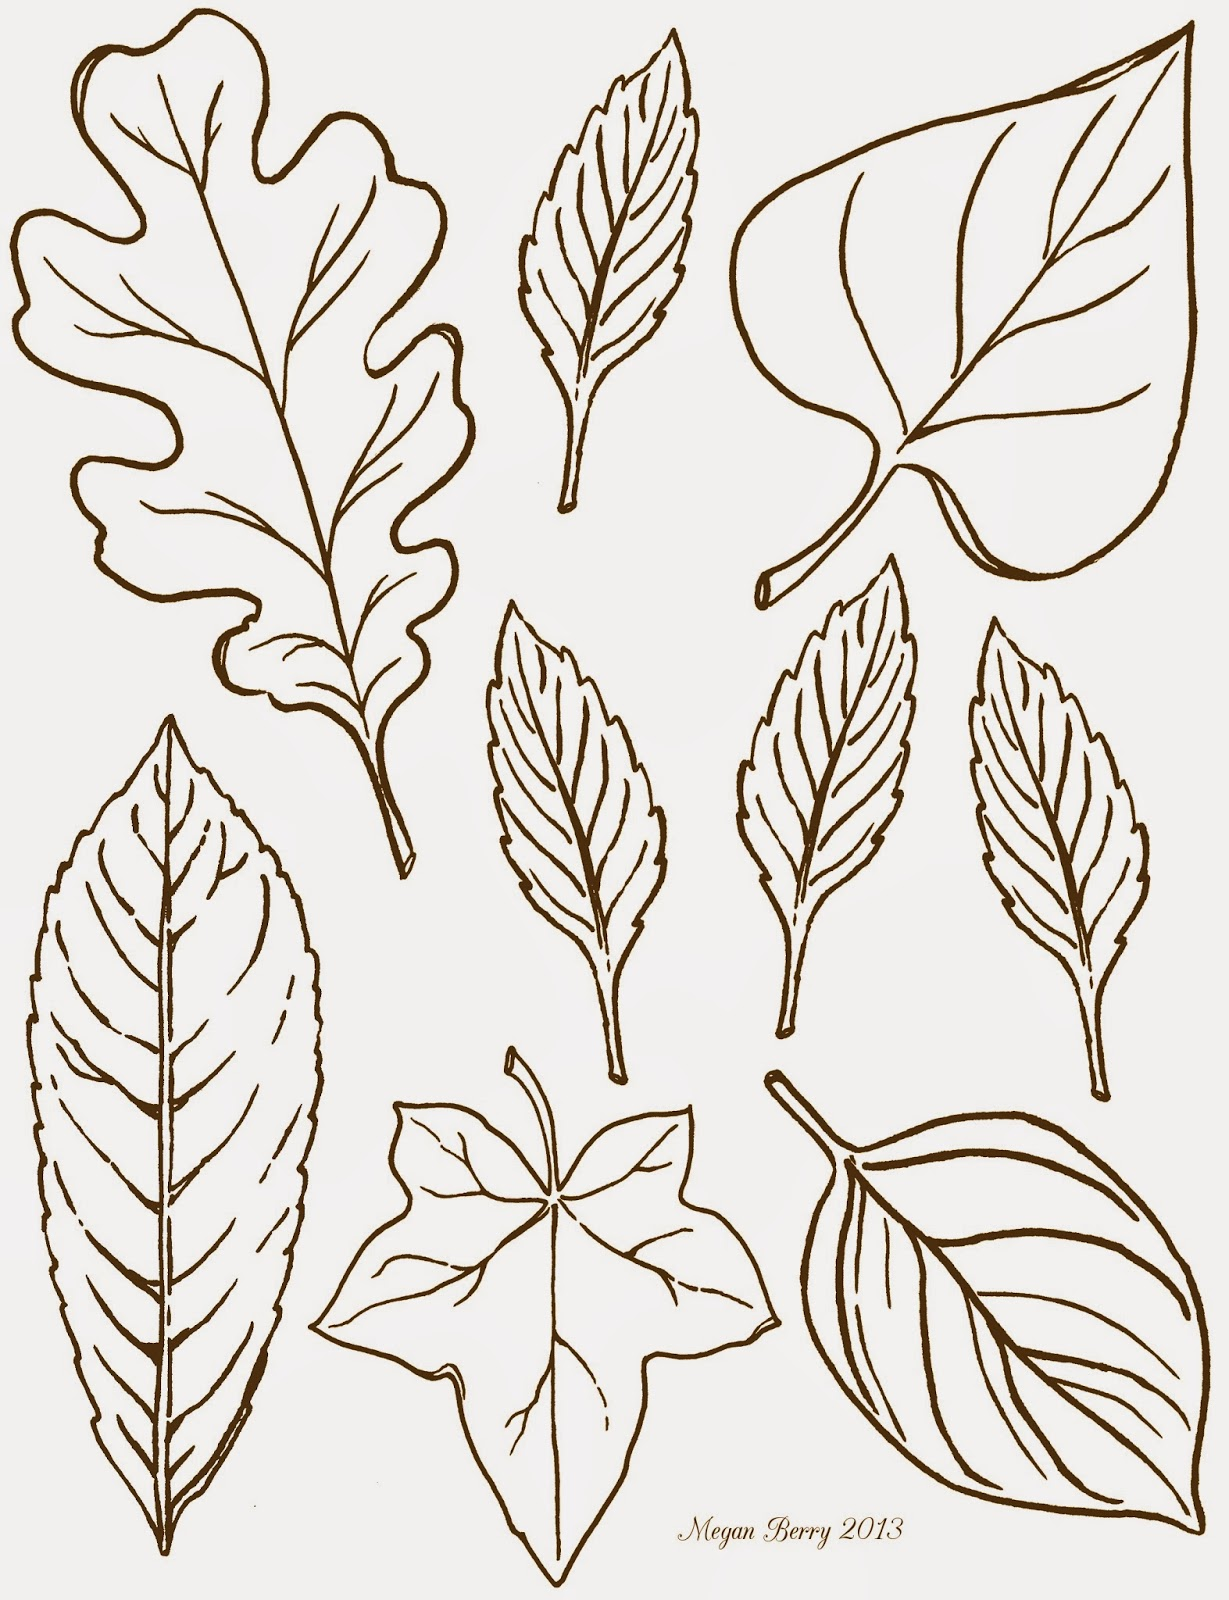 This is an image of Juicy Fall Leaf Printable